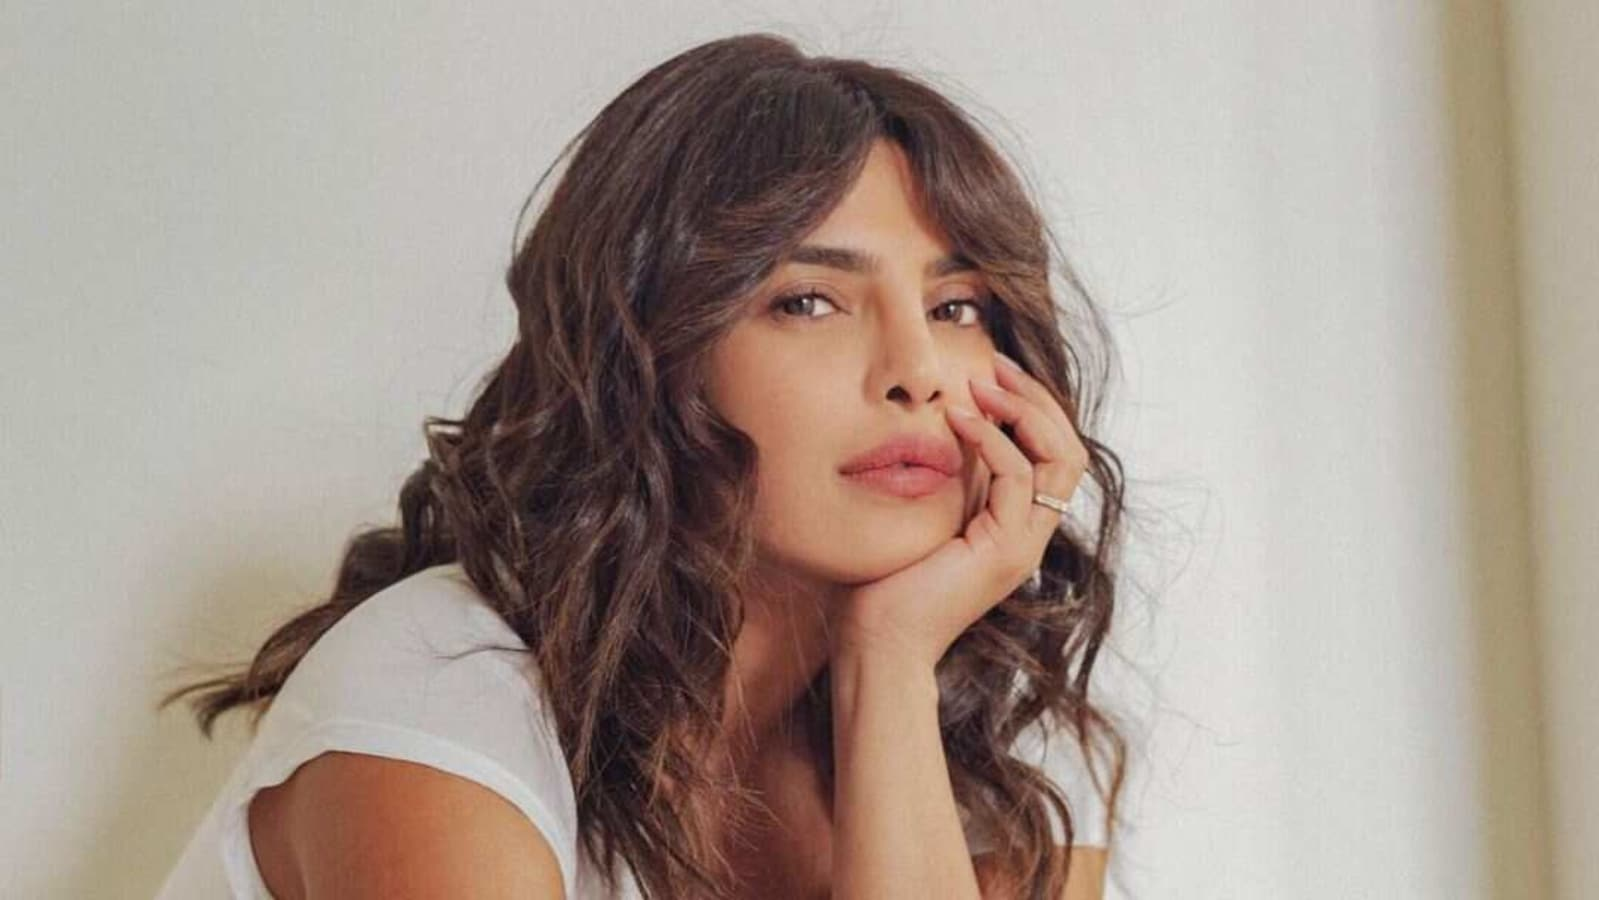 Priyanka Chopra says she gets a lot of negativity from her 'own community': 'Picking on me for no reason…' - Hindustan Times